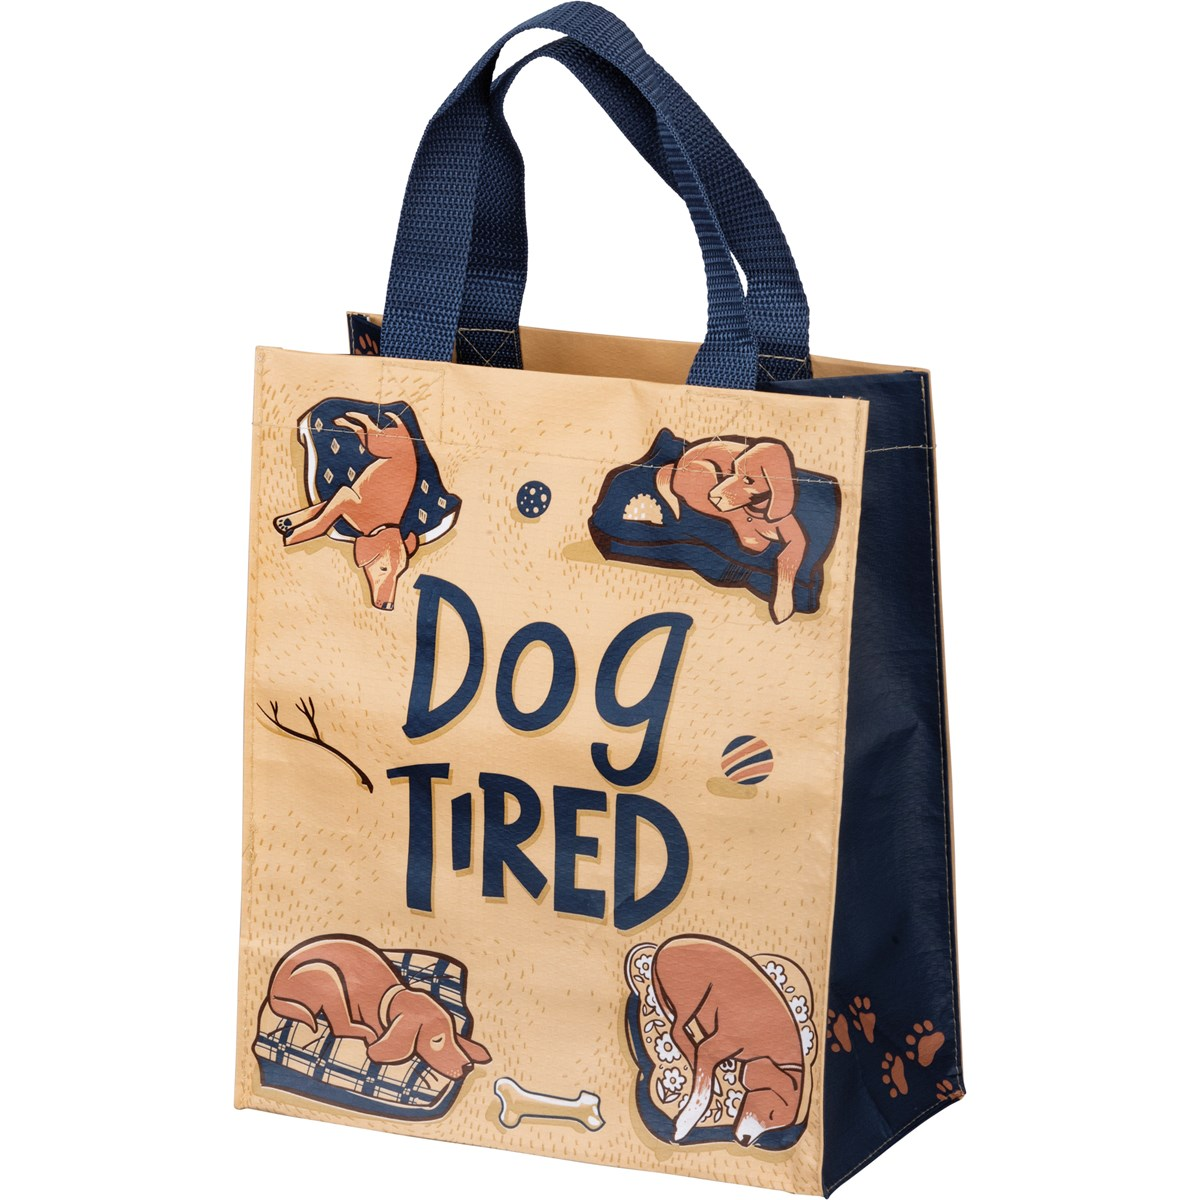 "Daily Tote - Dog Tired - 8.75"" x 10.25"" x 4.75""  - Post-Consumer Material, Nylon"